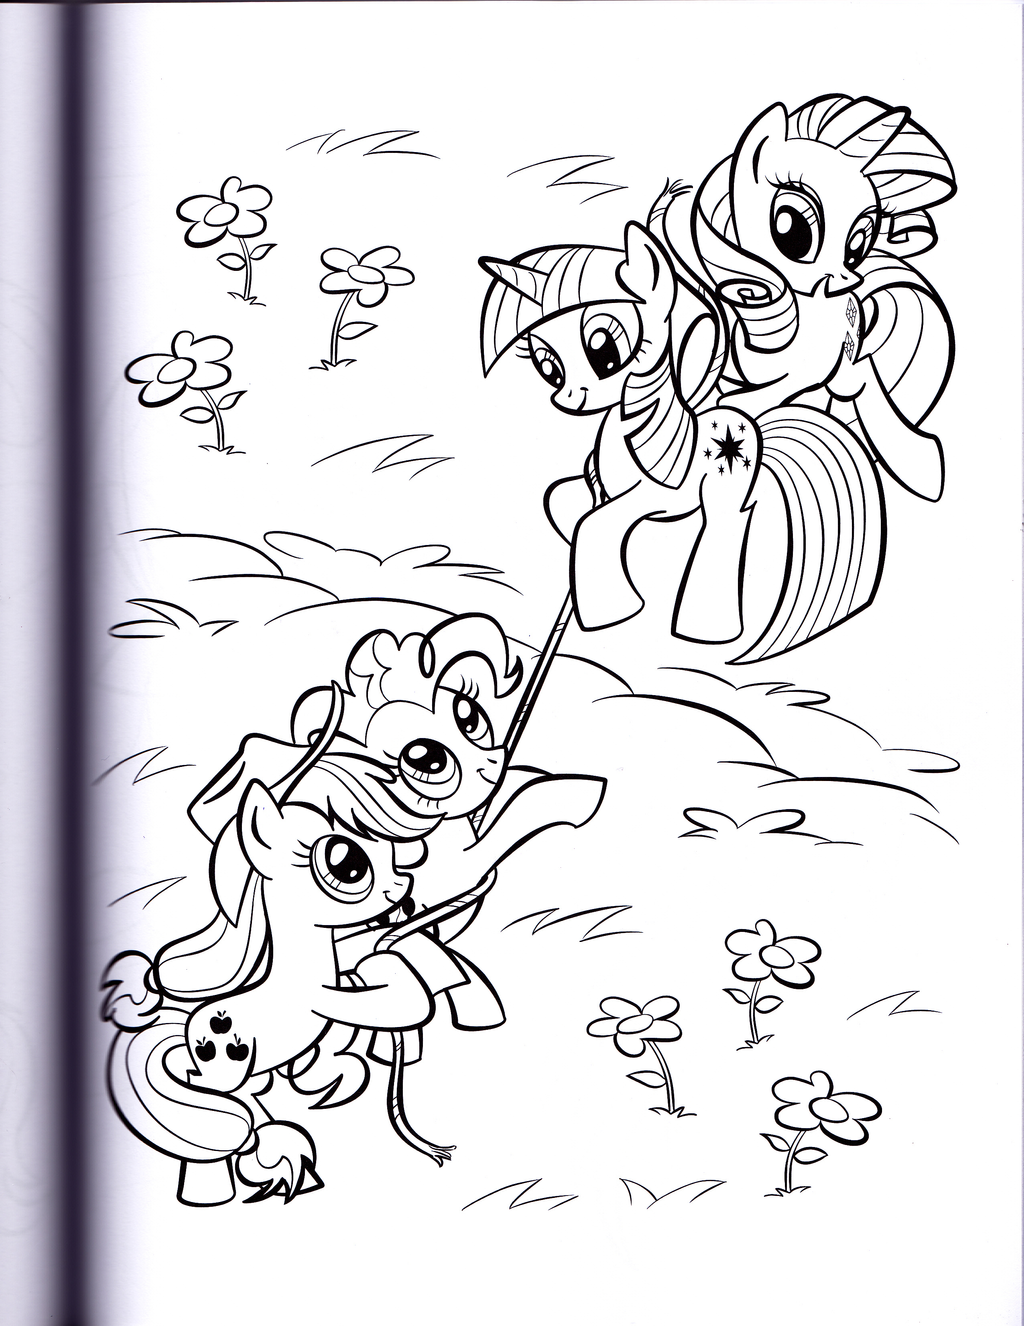 twilight and rarity mlp coloring book by kwark85 - Mlp Coloring Book